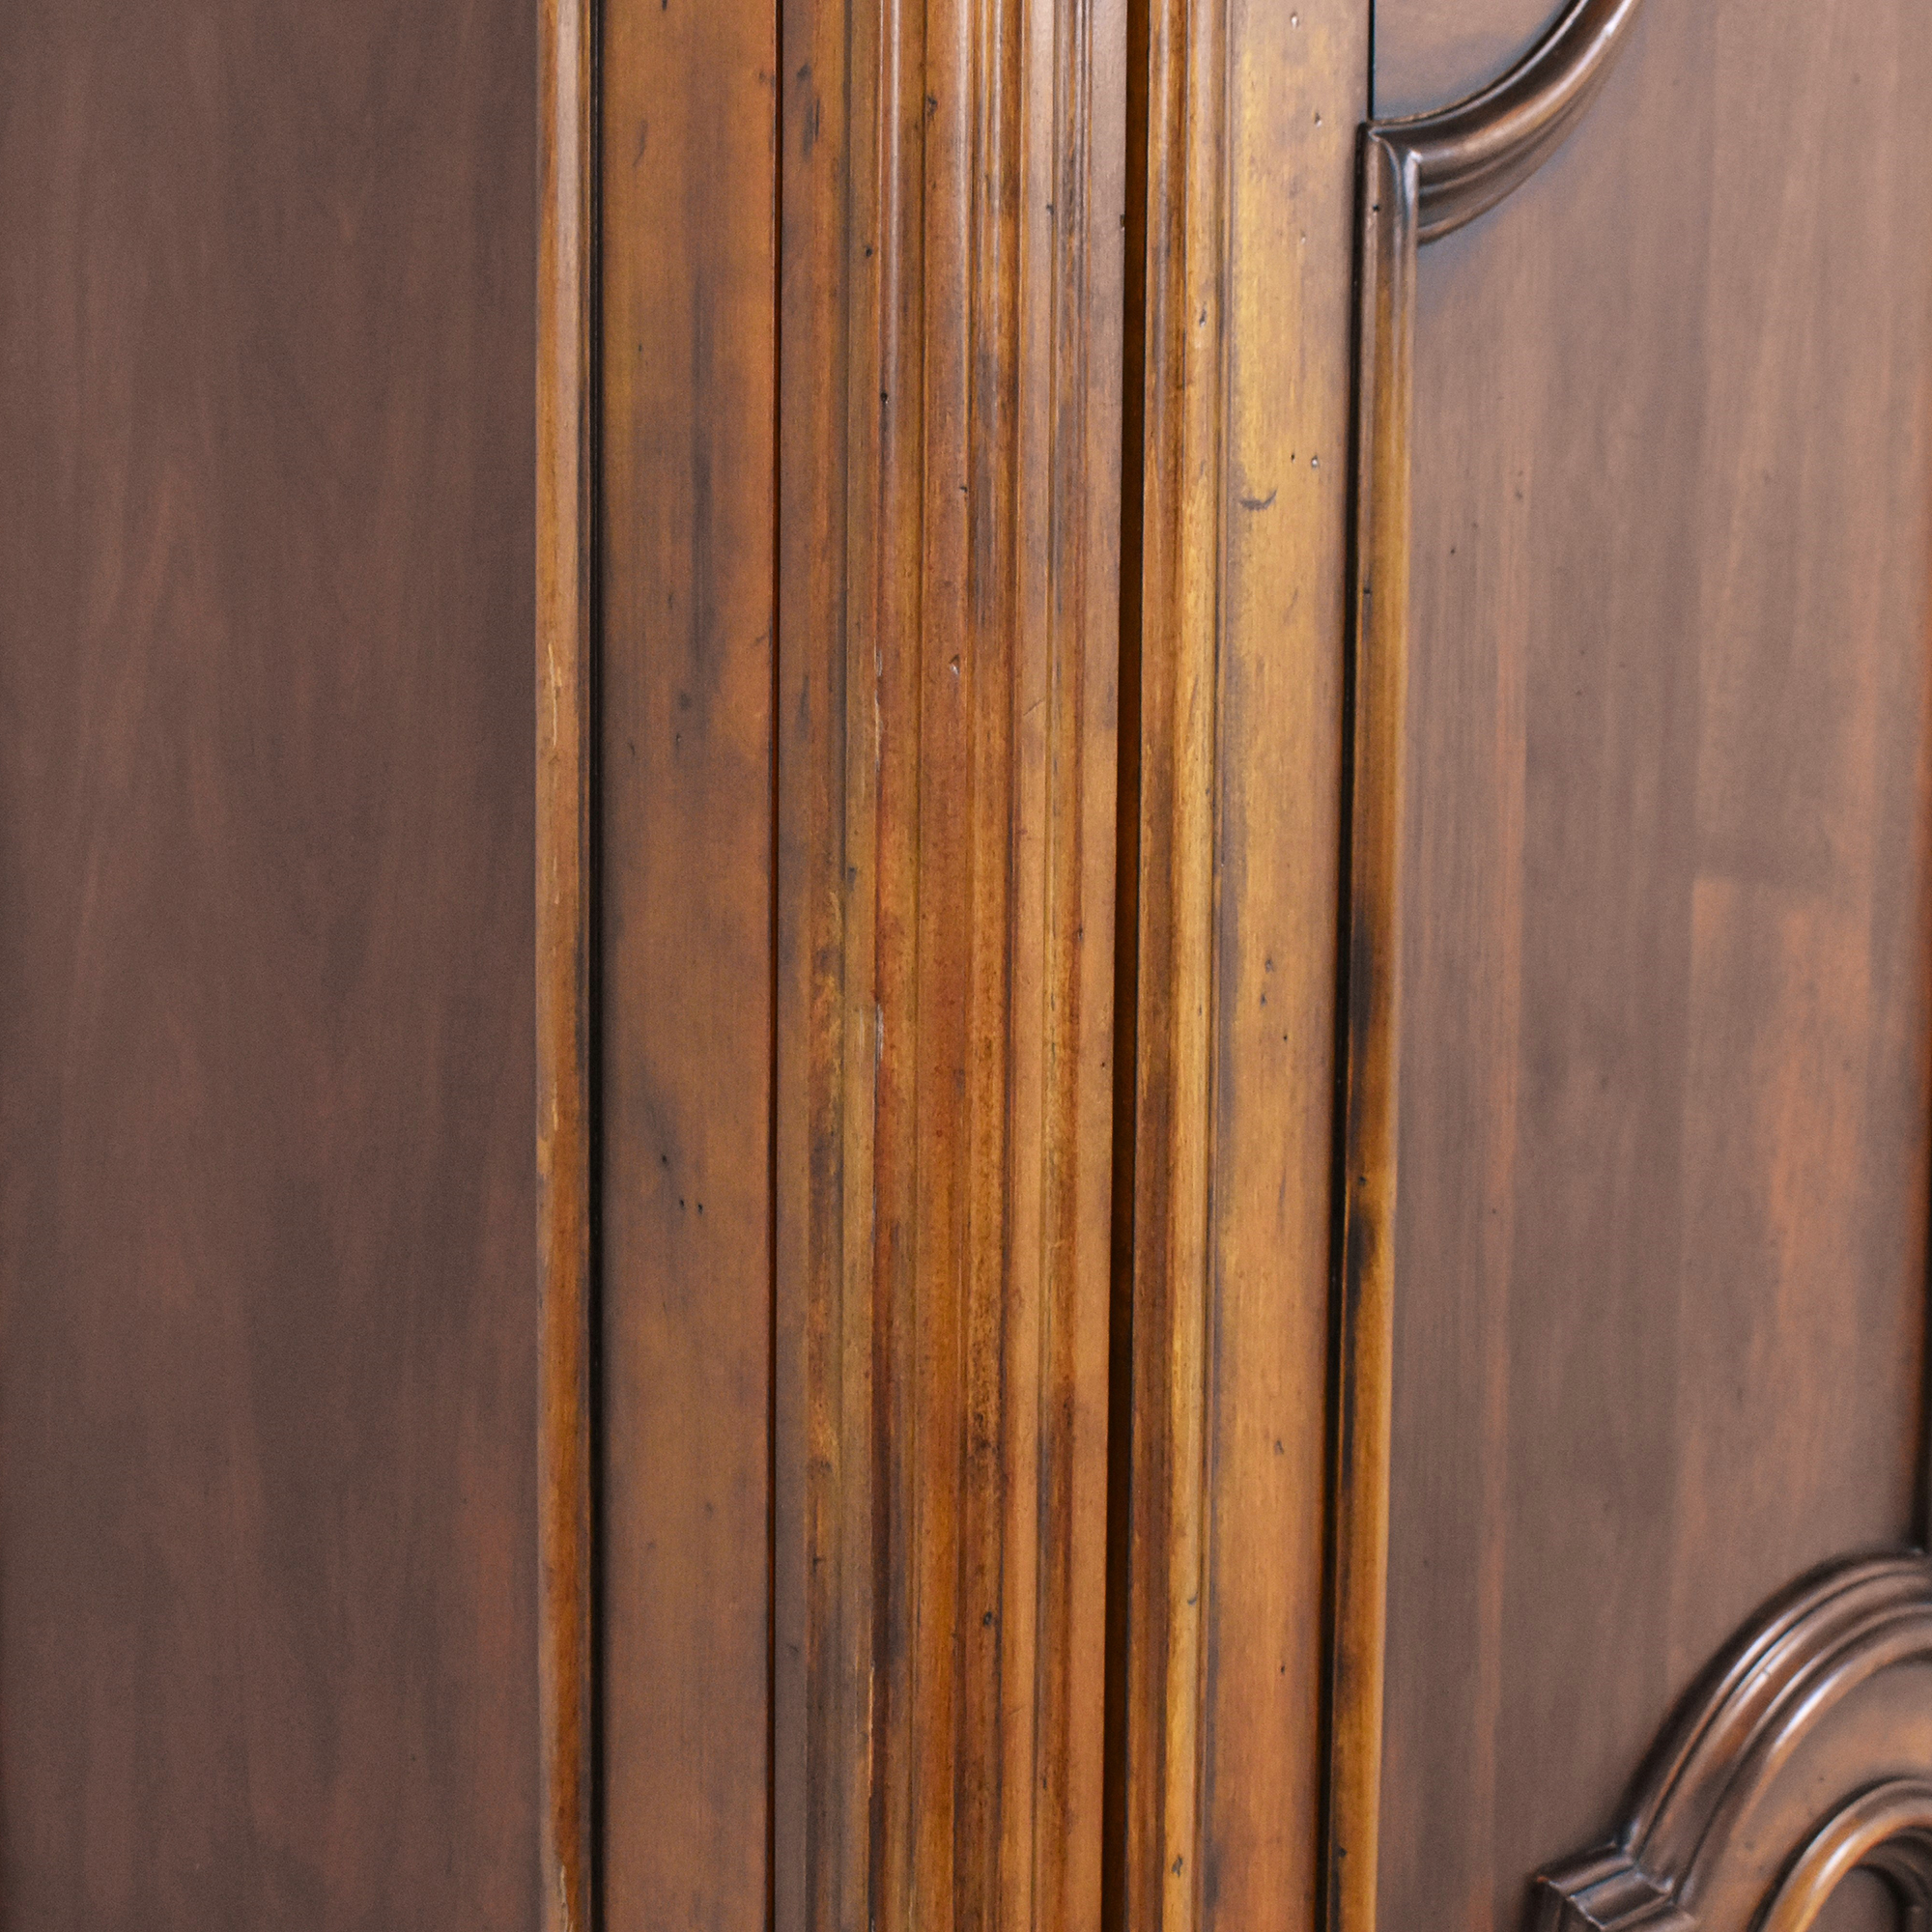 Ethan Allen Ethan Allen Tuscany Armoire nyc